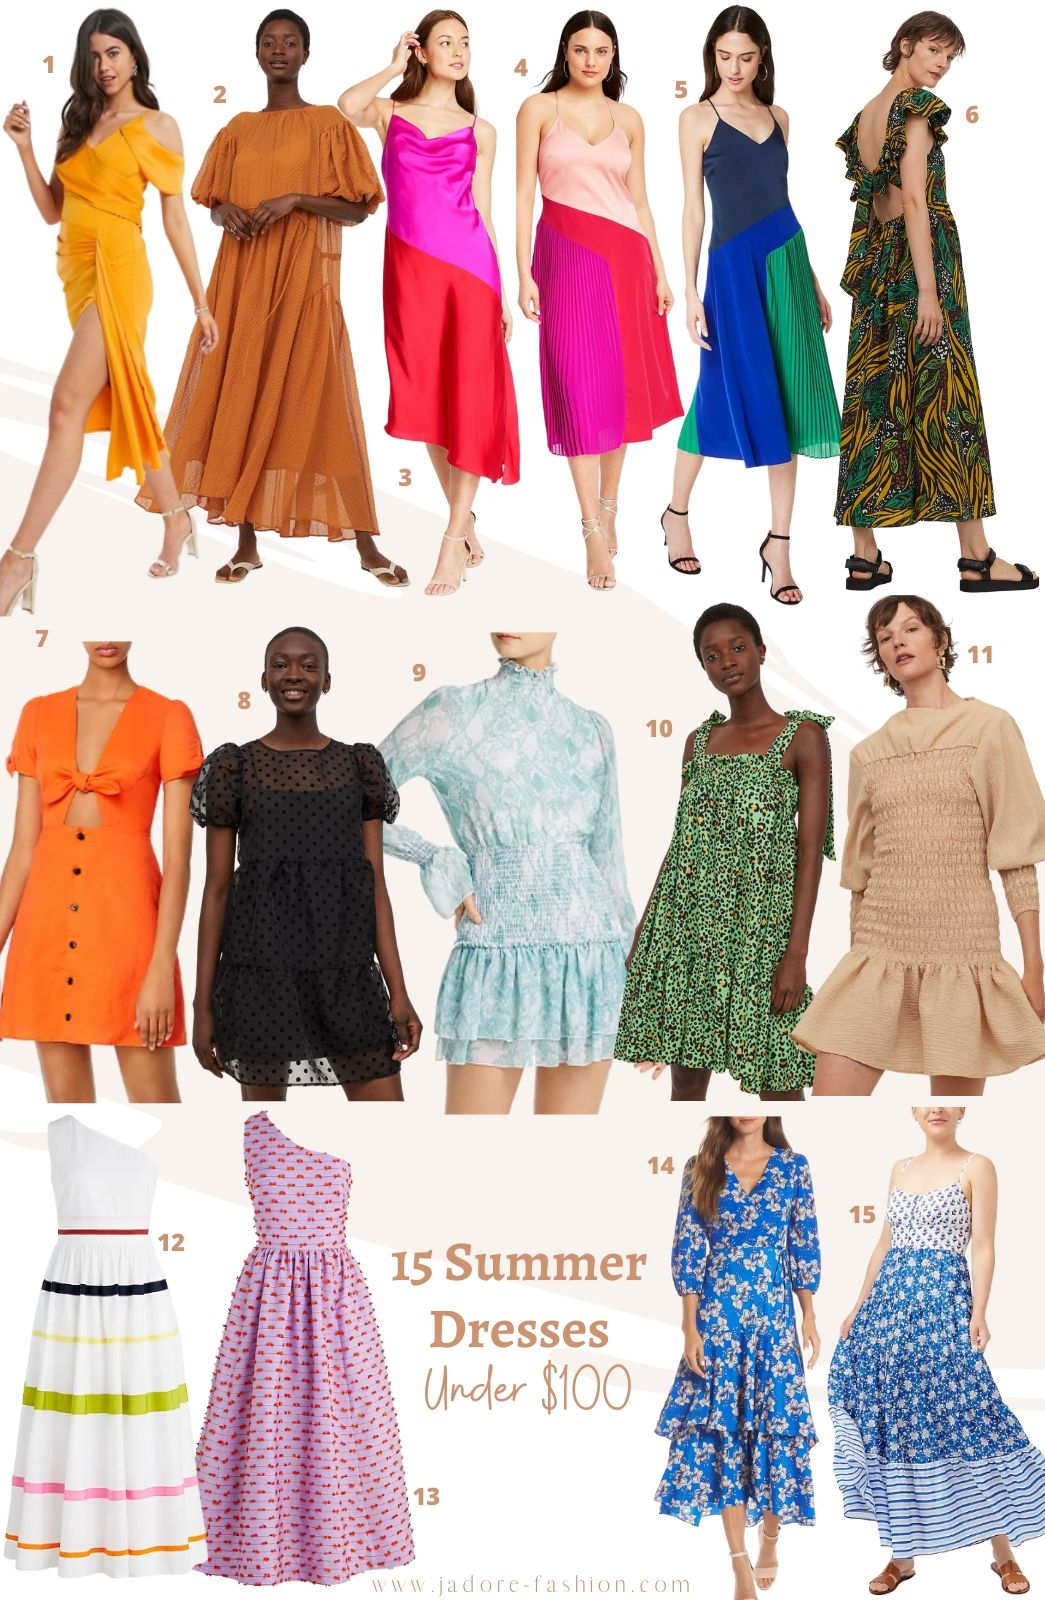 Perfect Summer Dresses Under $100